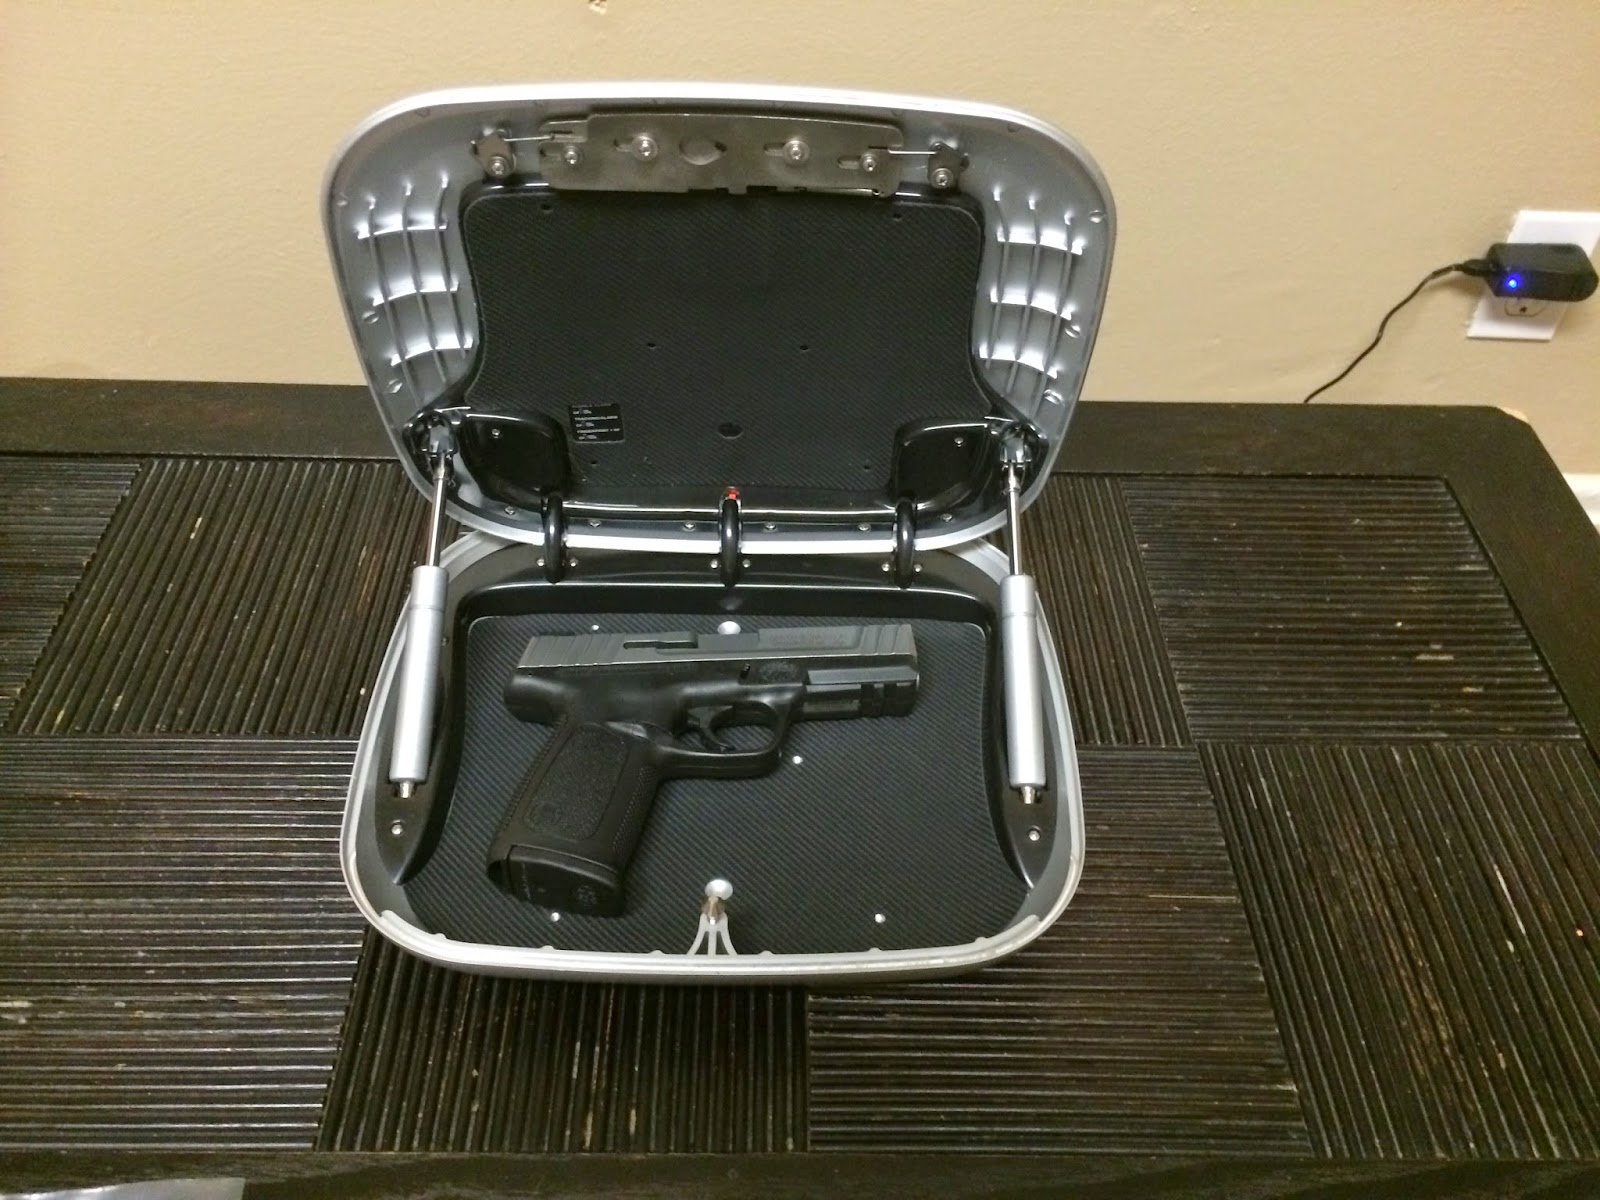 GunBox with handgun